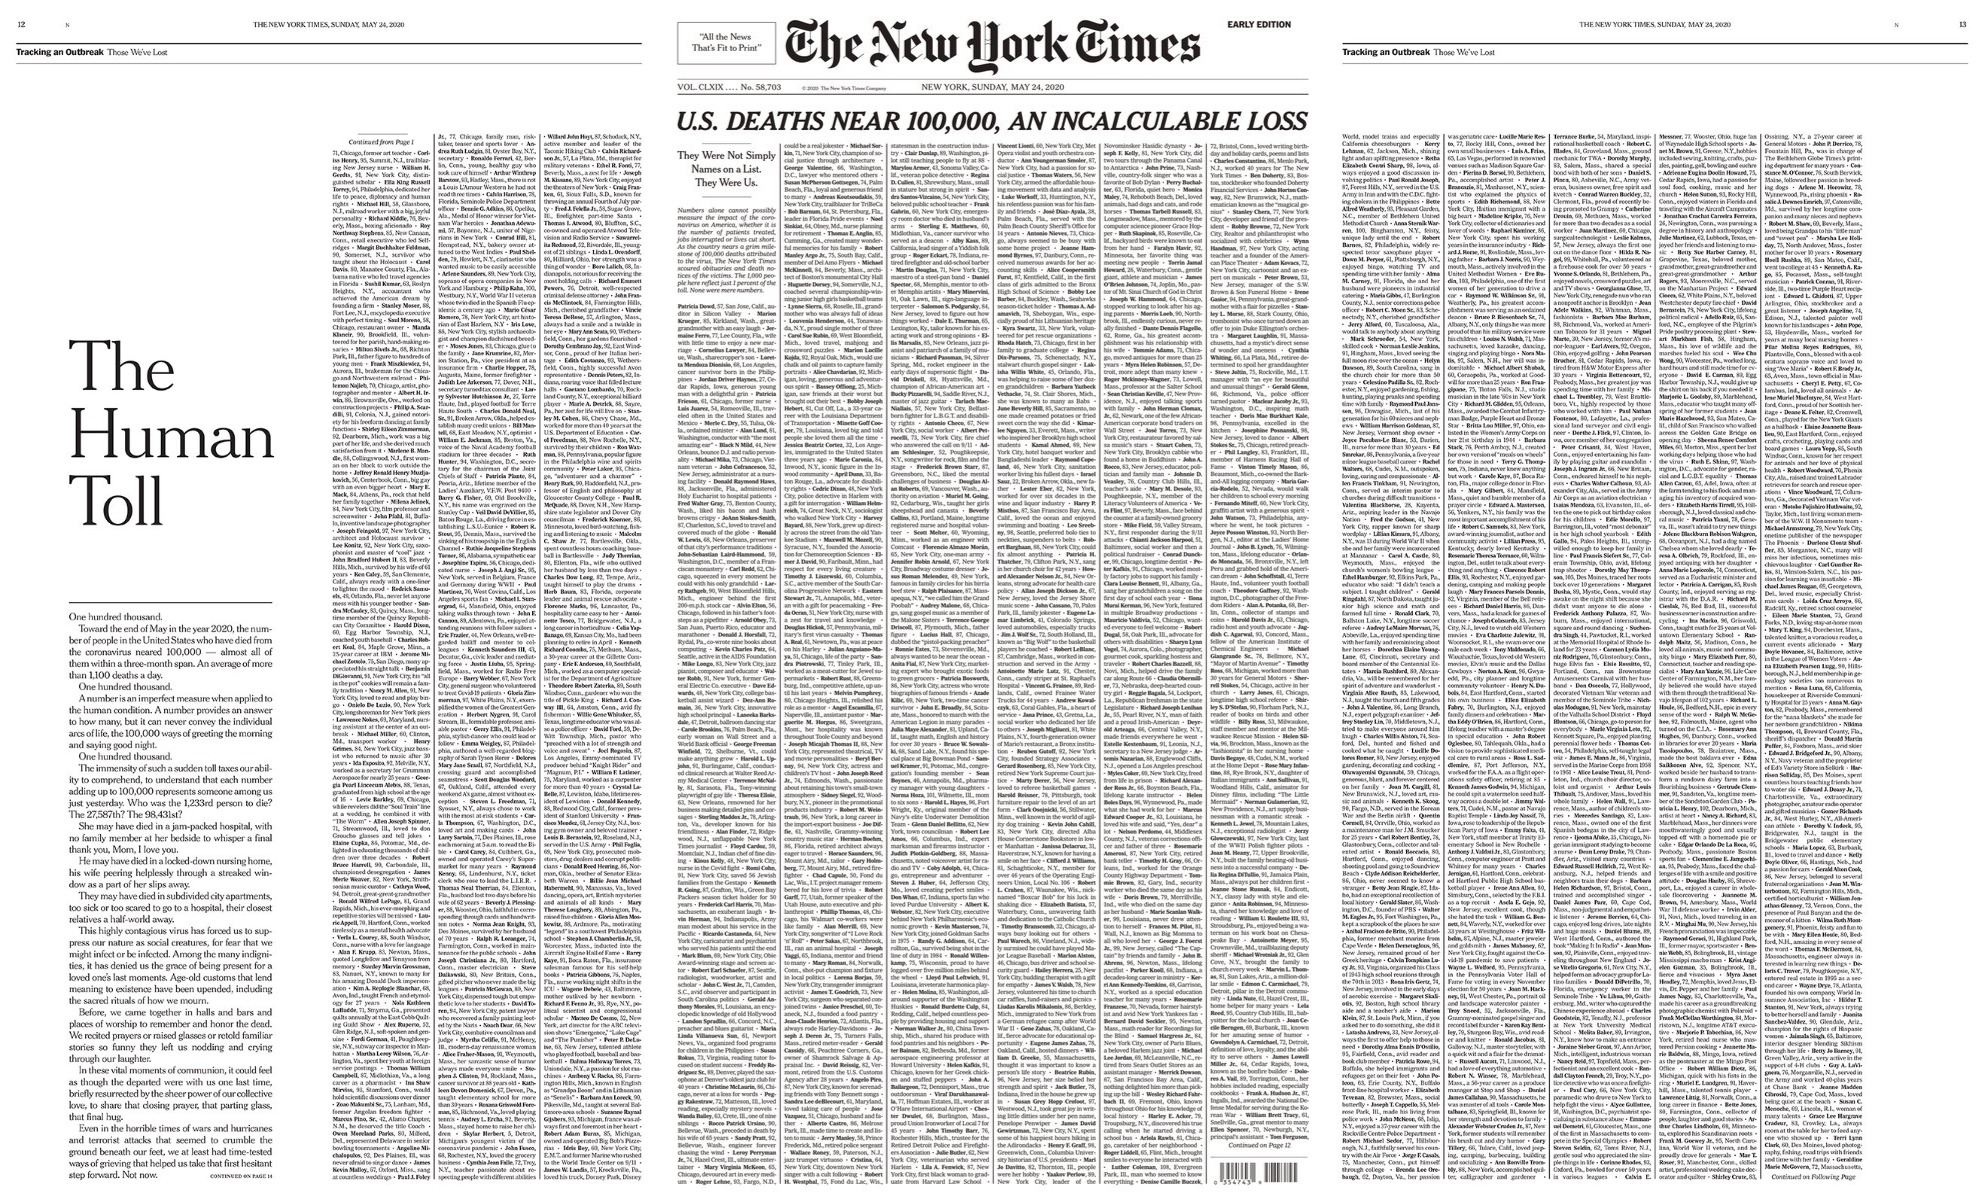 new-york-times-maxitis-kilkis-first-page